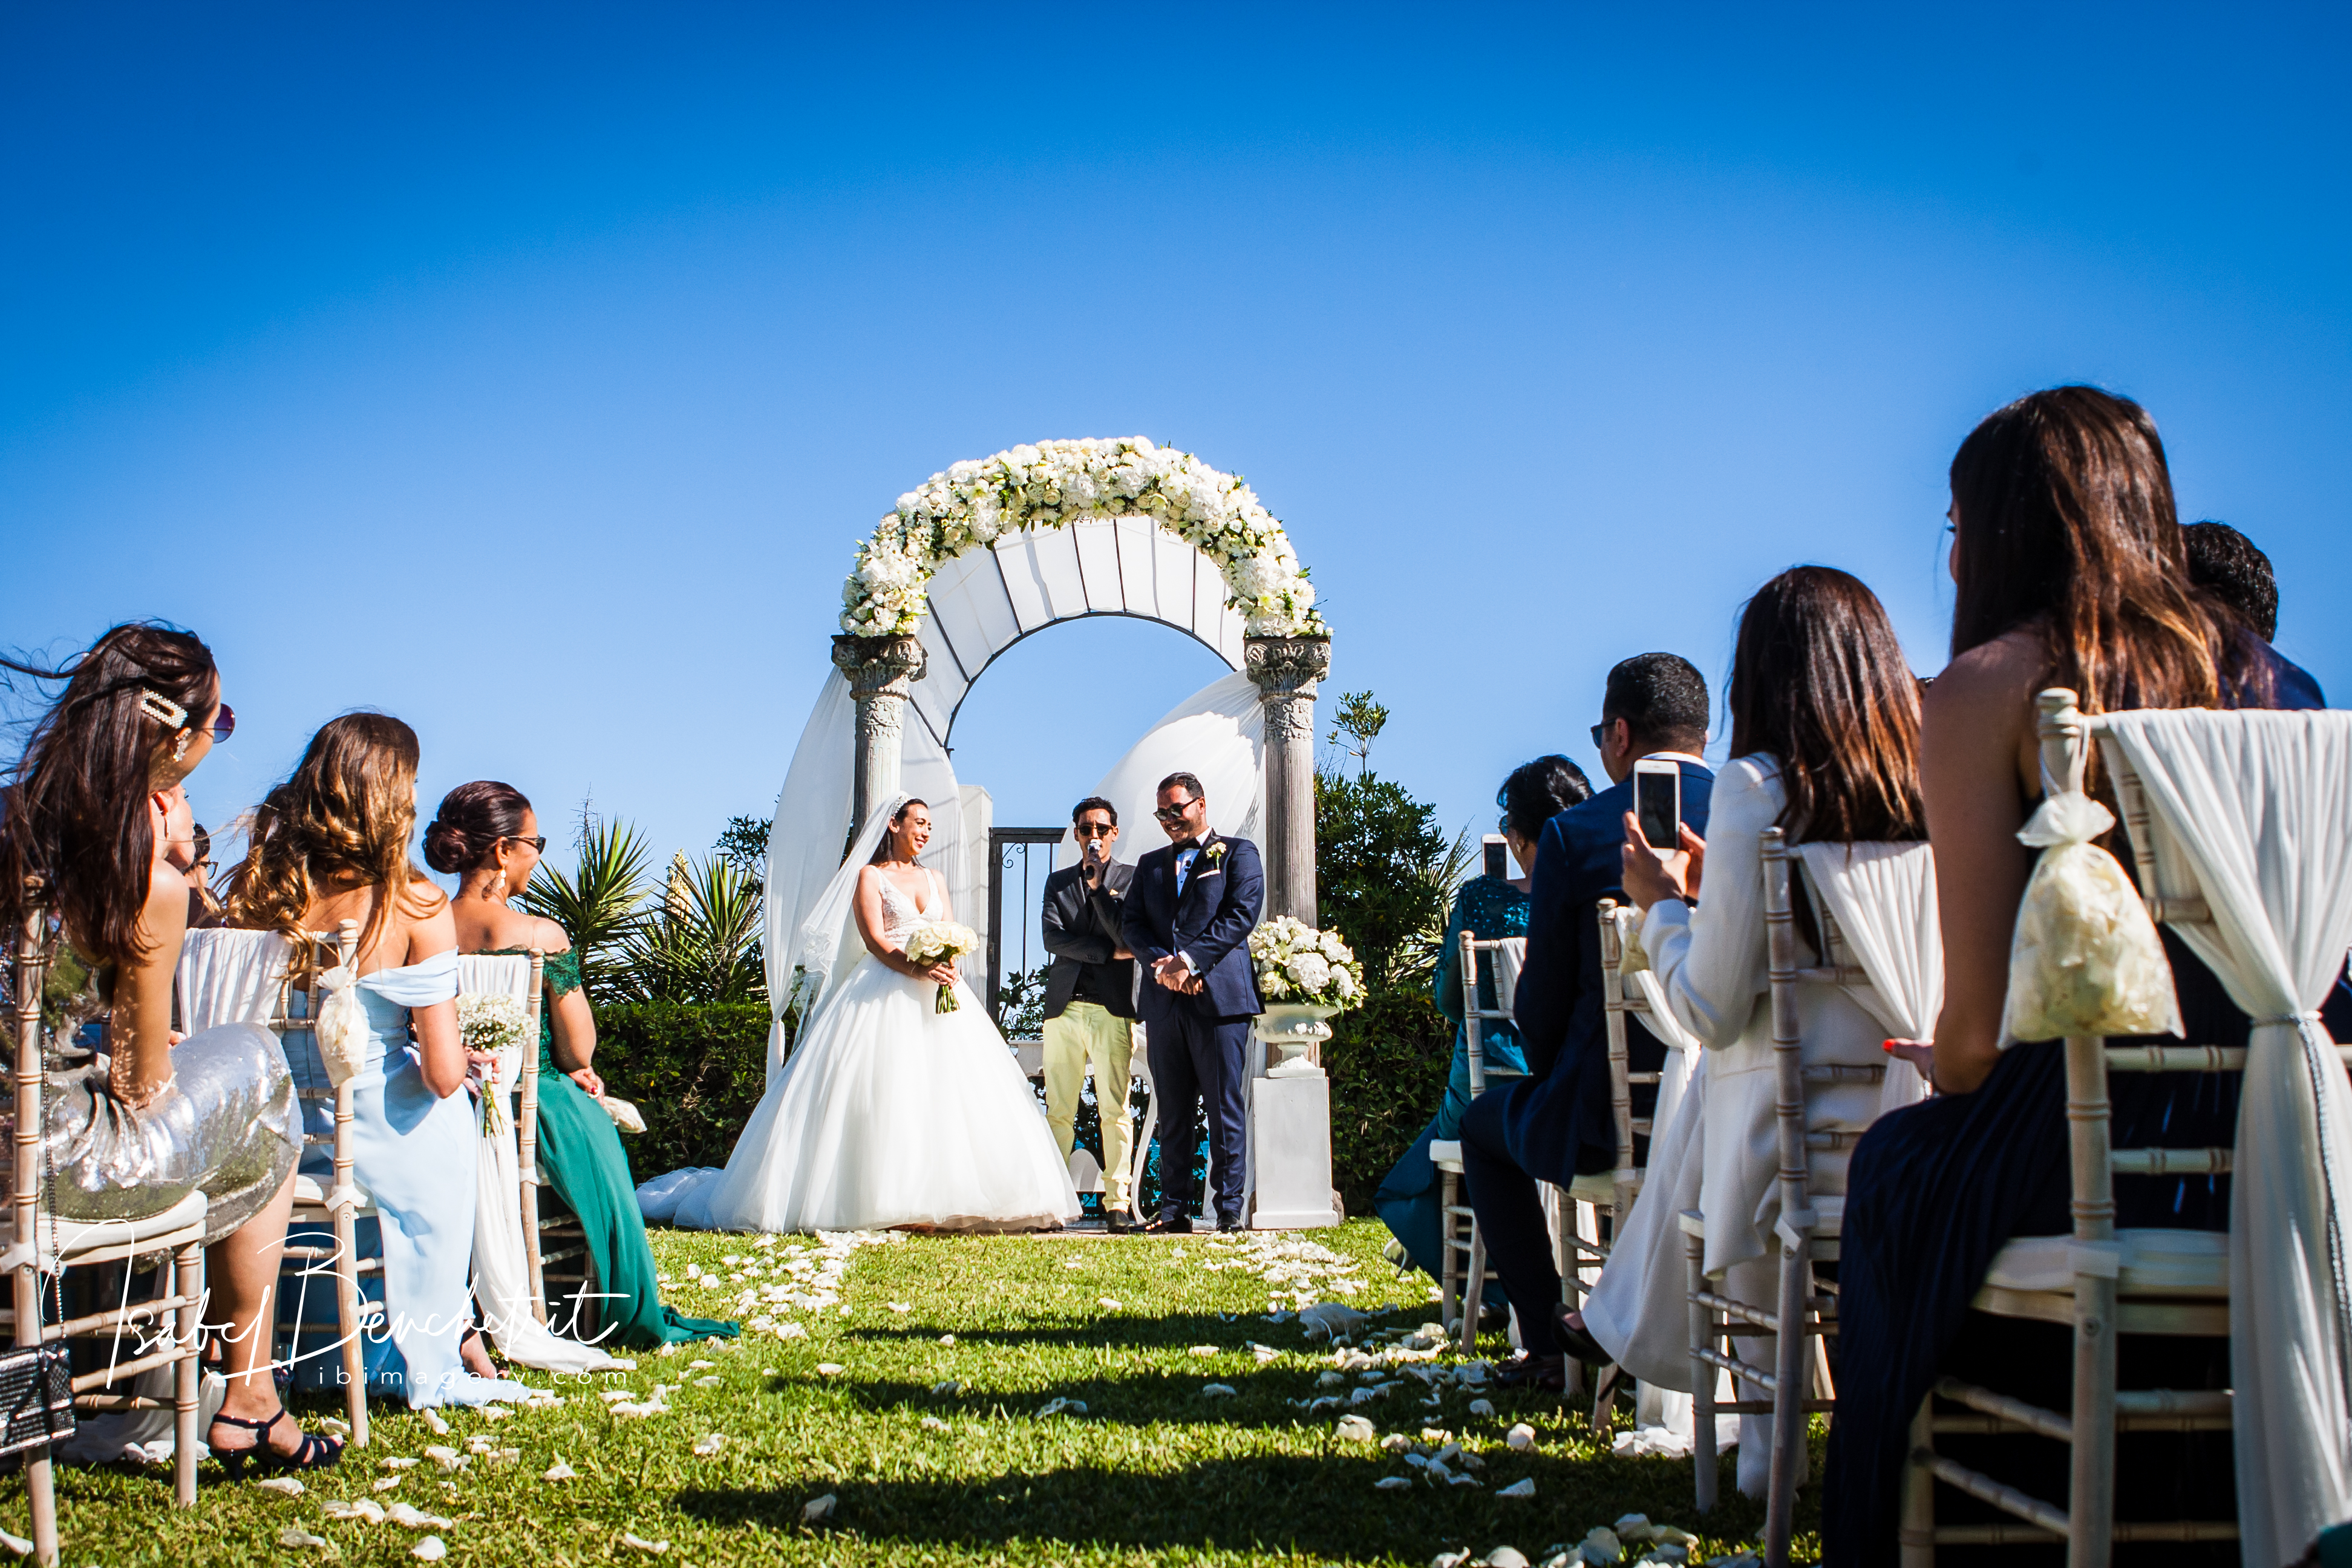 The wedding ceremony in the lush green gardens